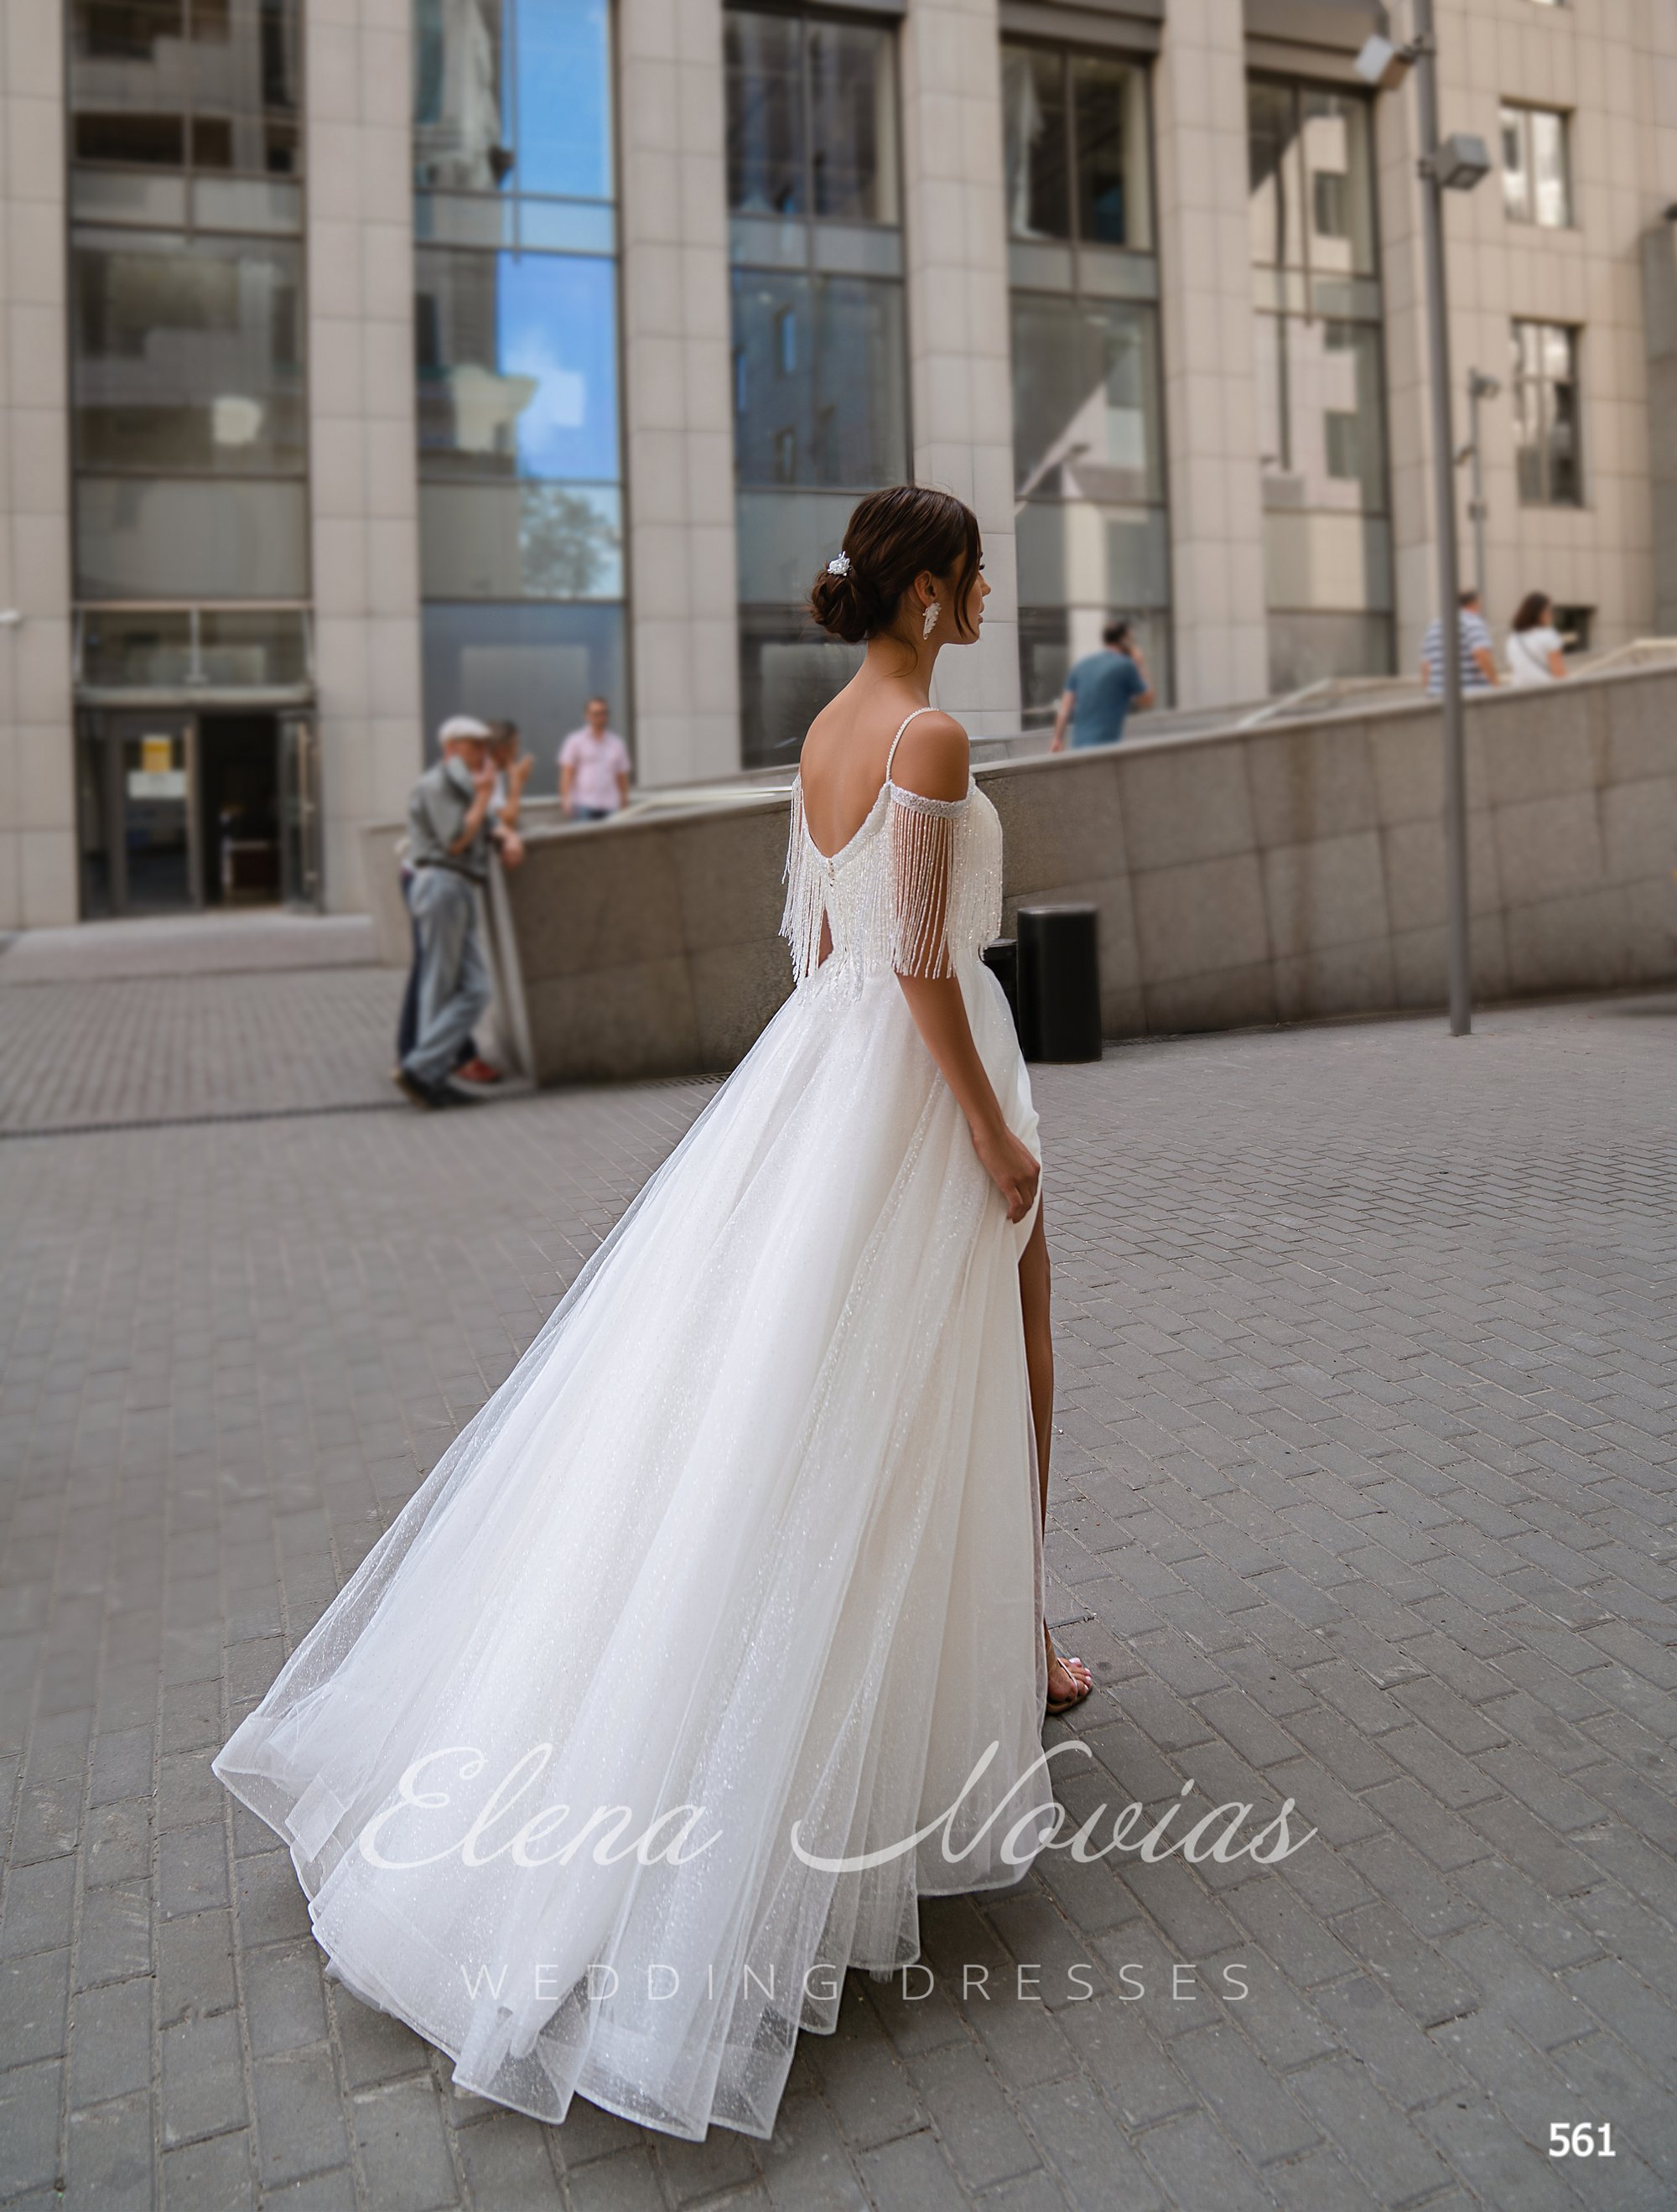 Wedding dresses 561 3